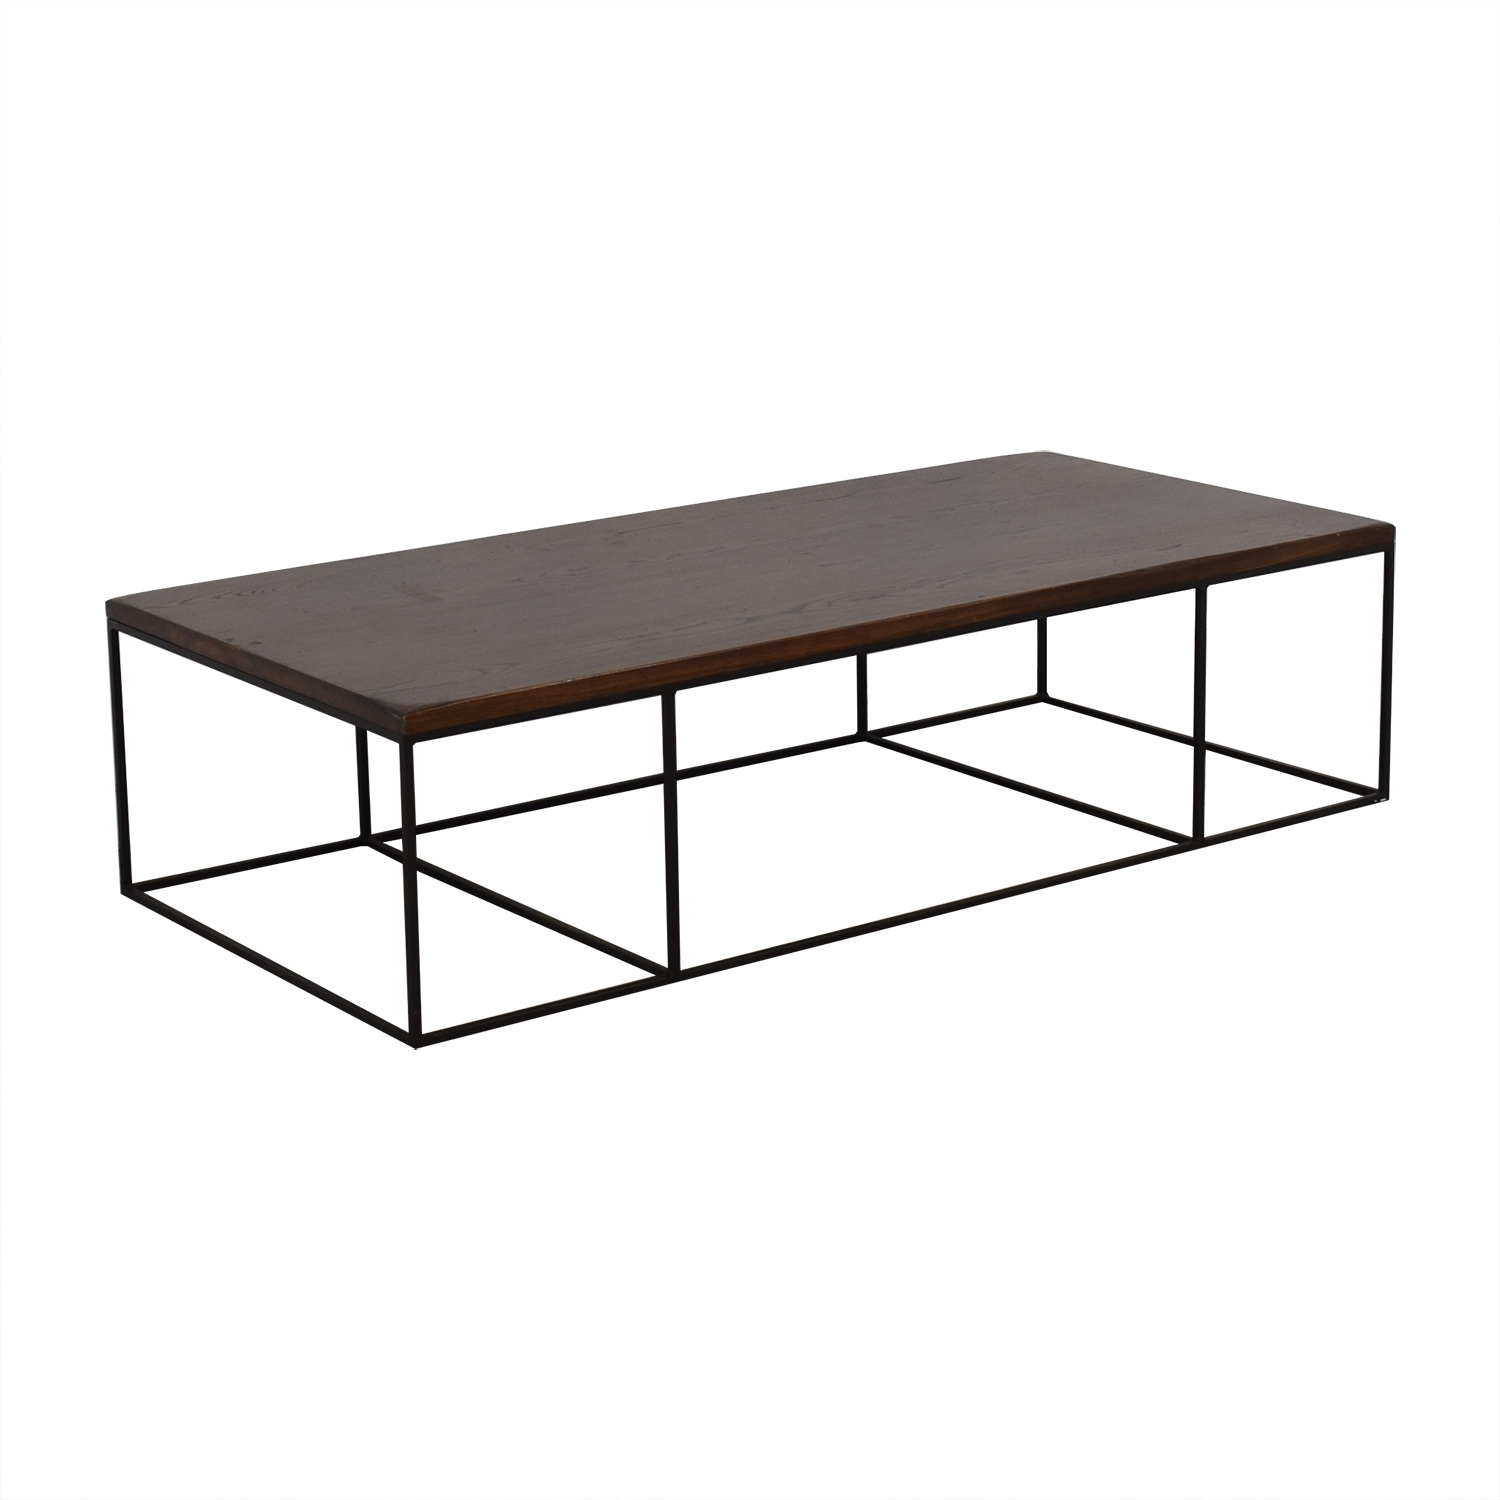 Restoration Hardware Restoration Hardware Coffee Table discount